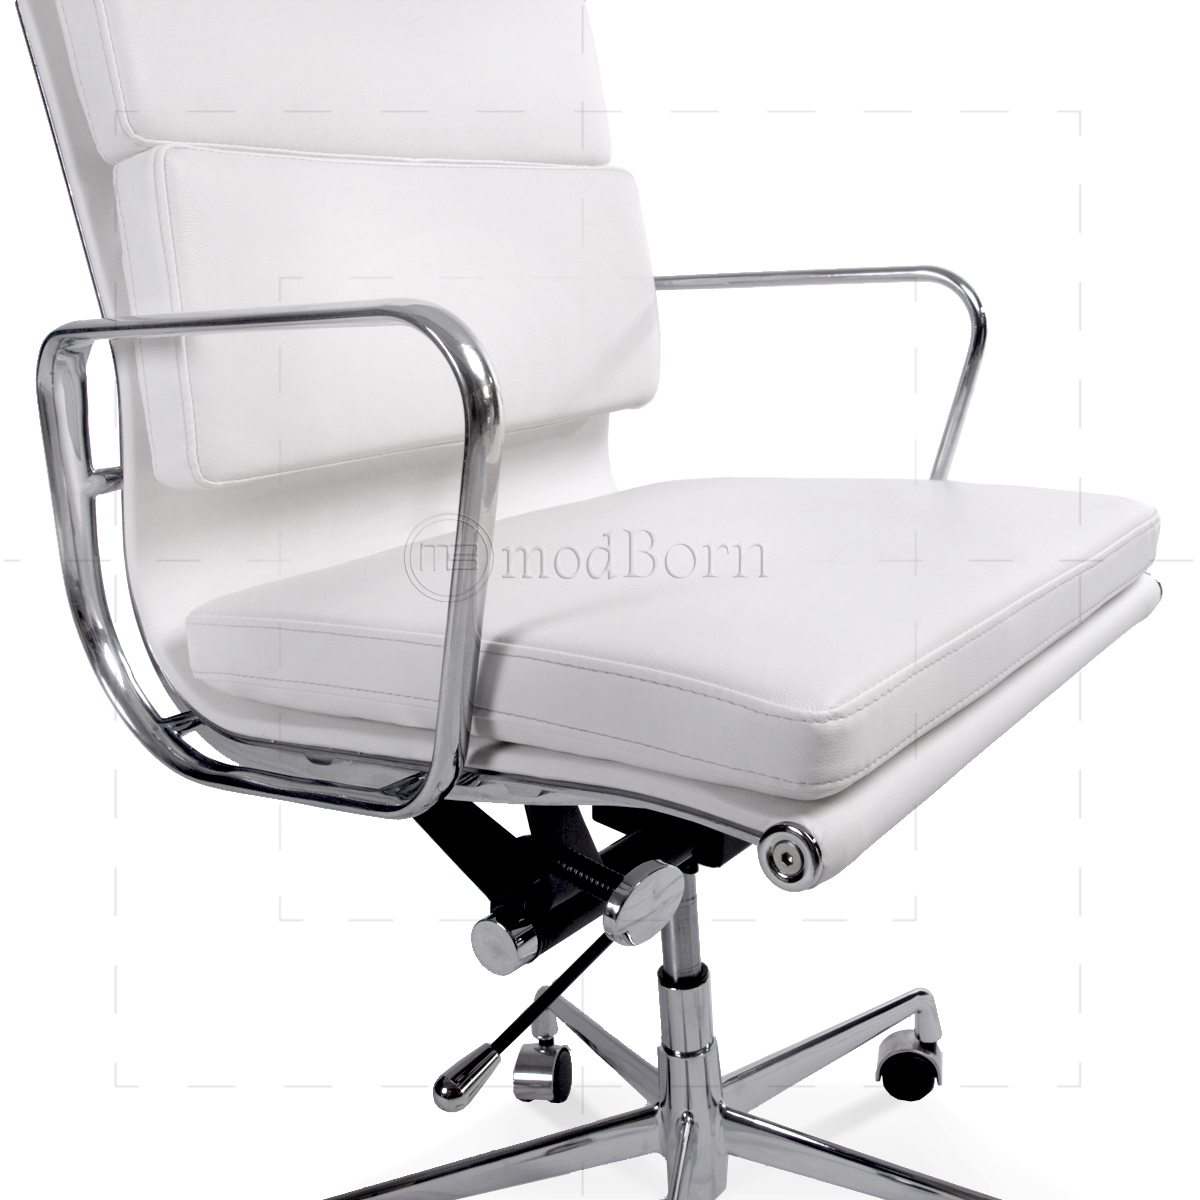 ea219 eames style office chair high back soft pad white leather bedroomsweet eames office chair replicas style